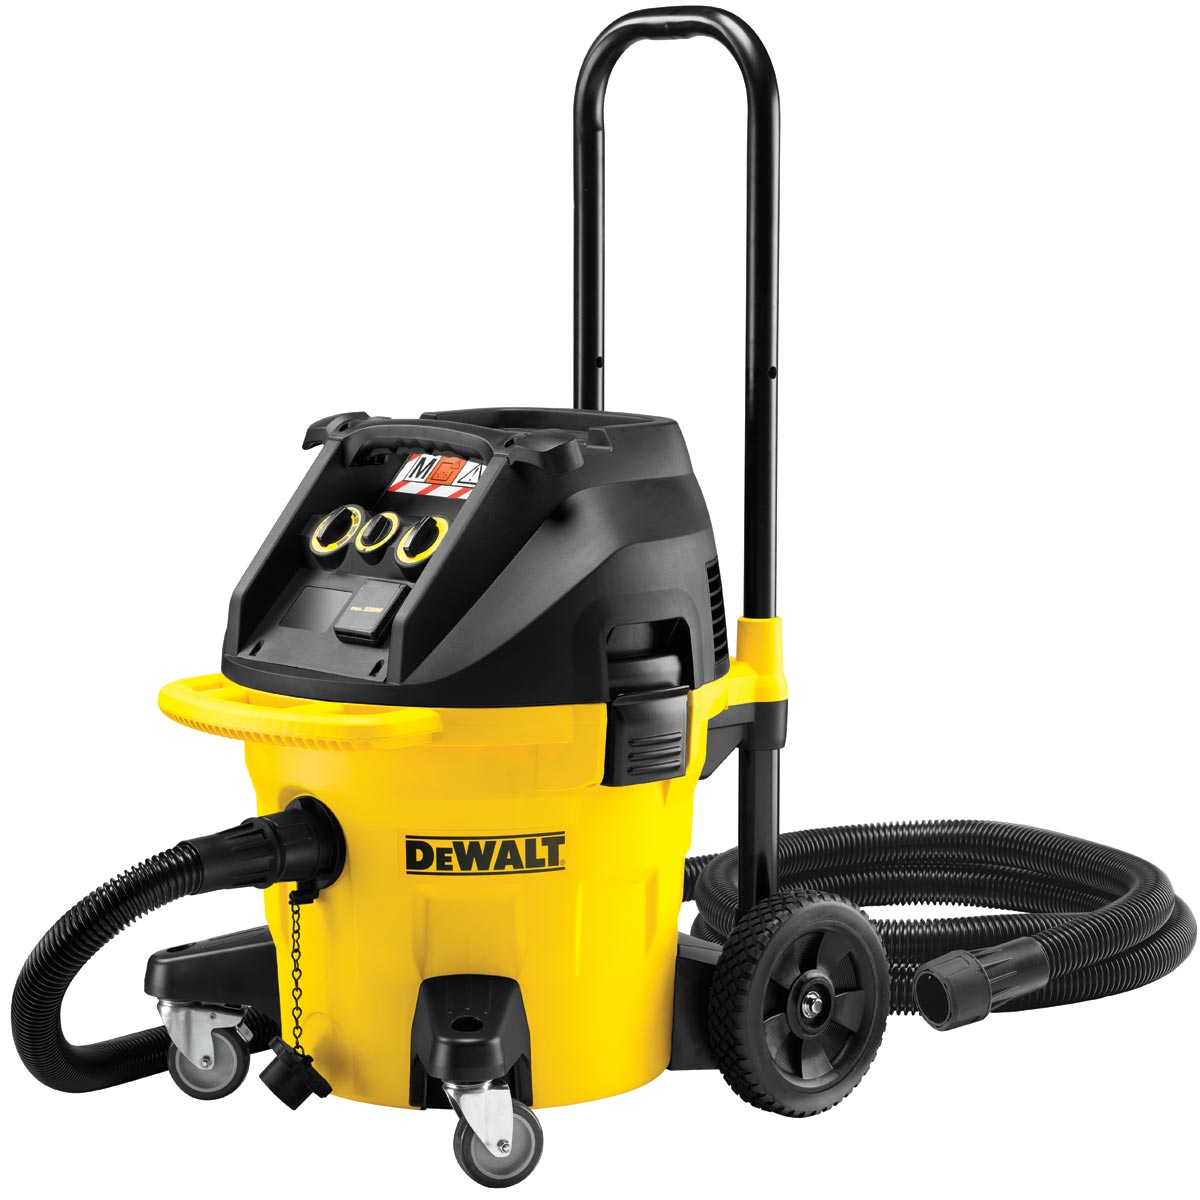 DEWALT DWV902M-LX 110V M CLASS CONSTRUCTION DUST EXTRACTOR